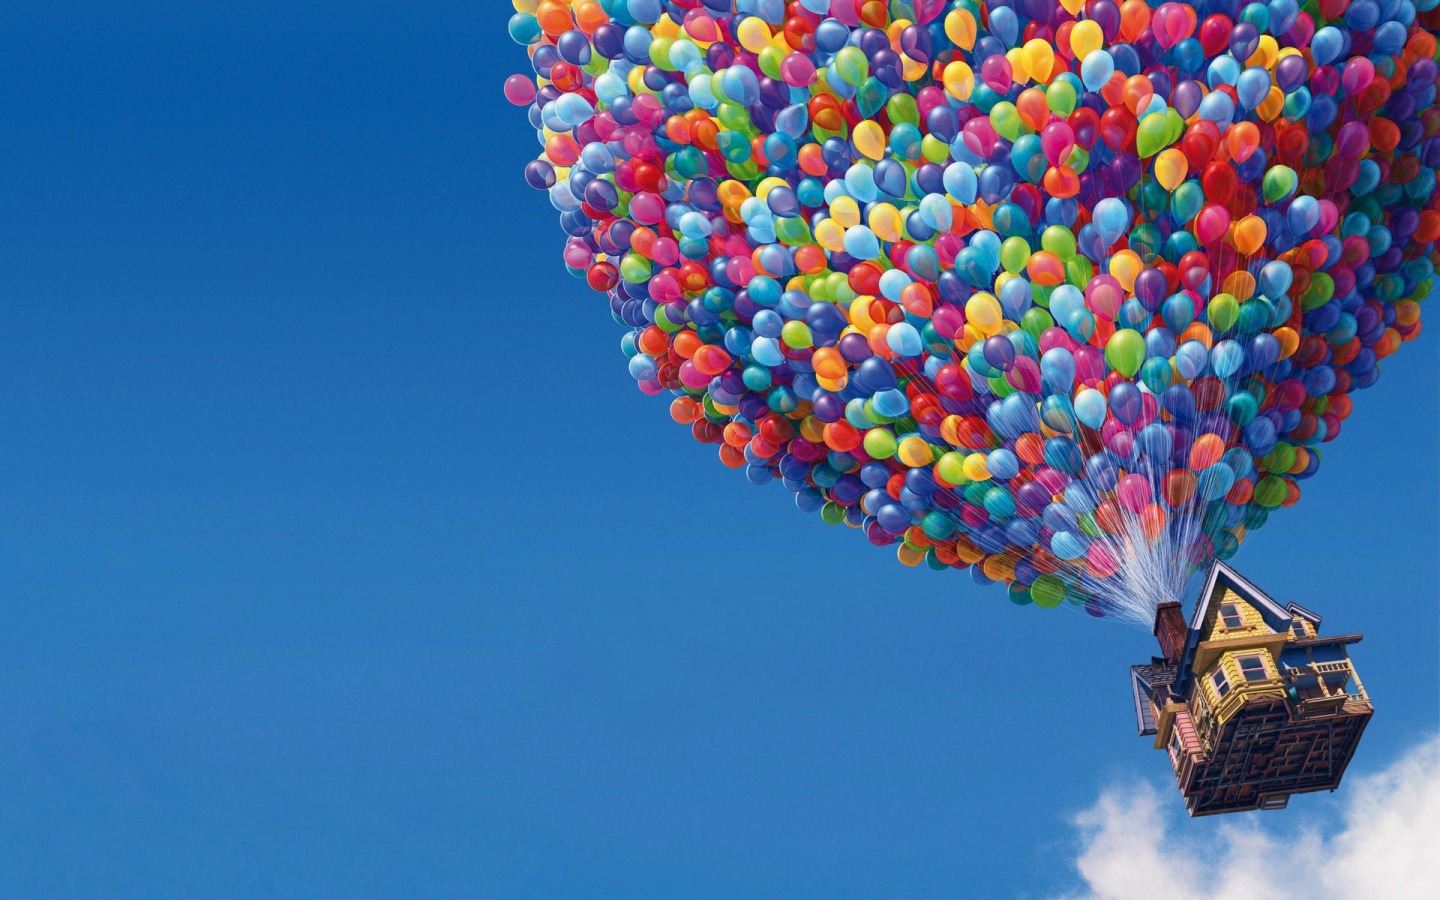 up_movie_balloons_house-1440x900.jpg (405.79 Kb)